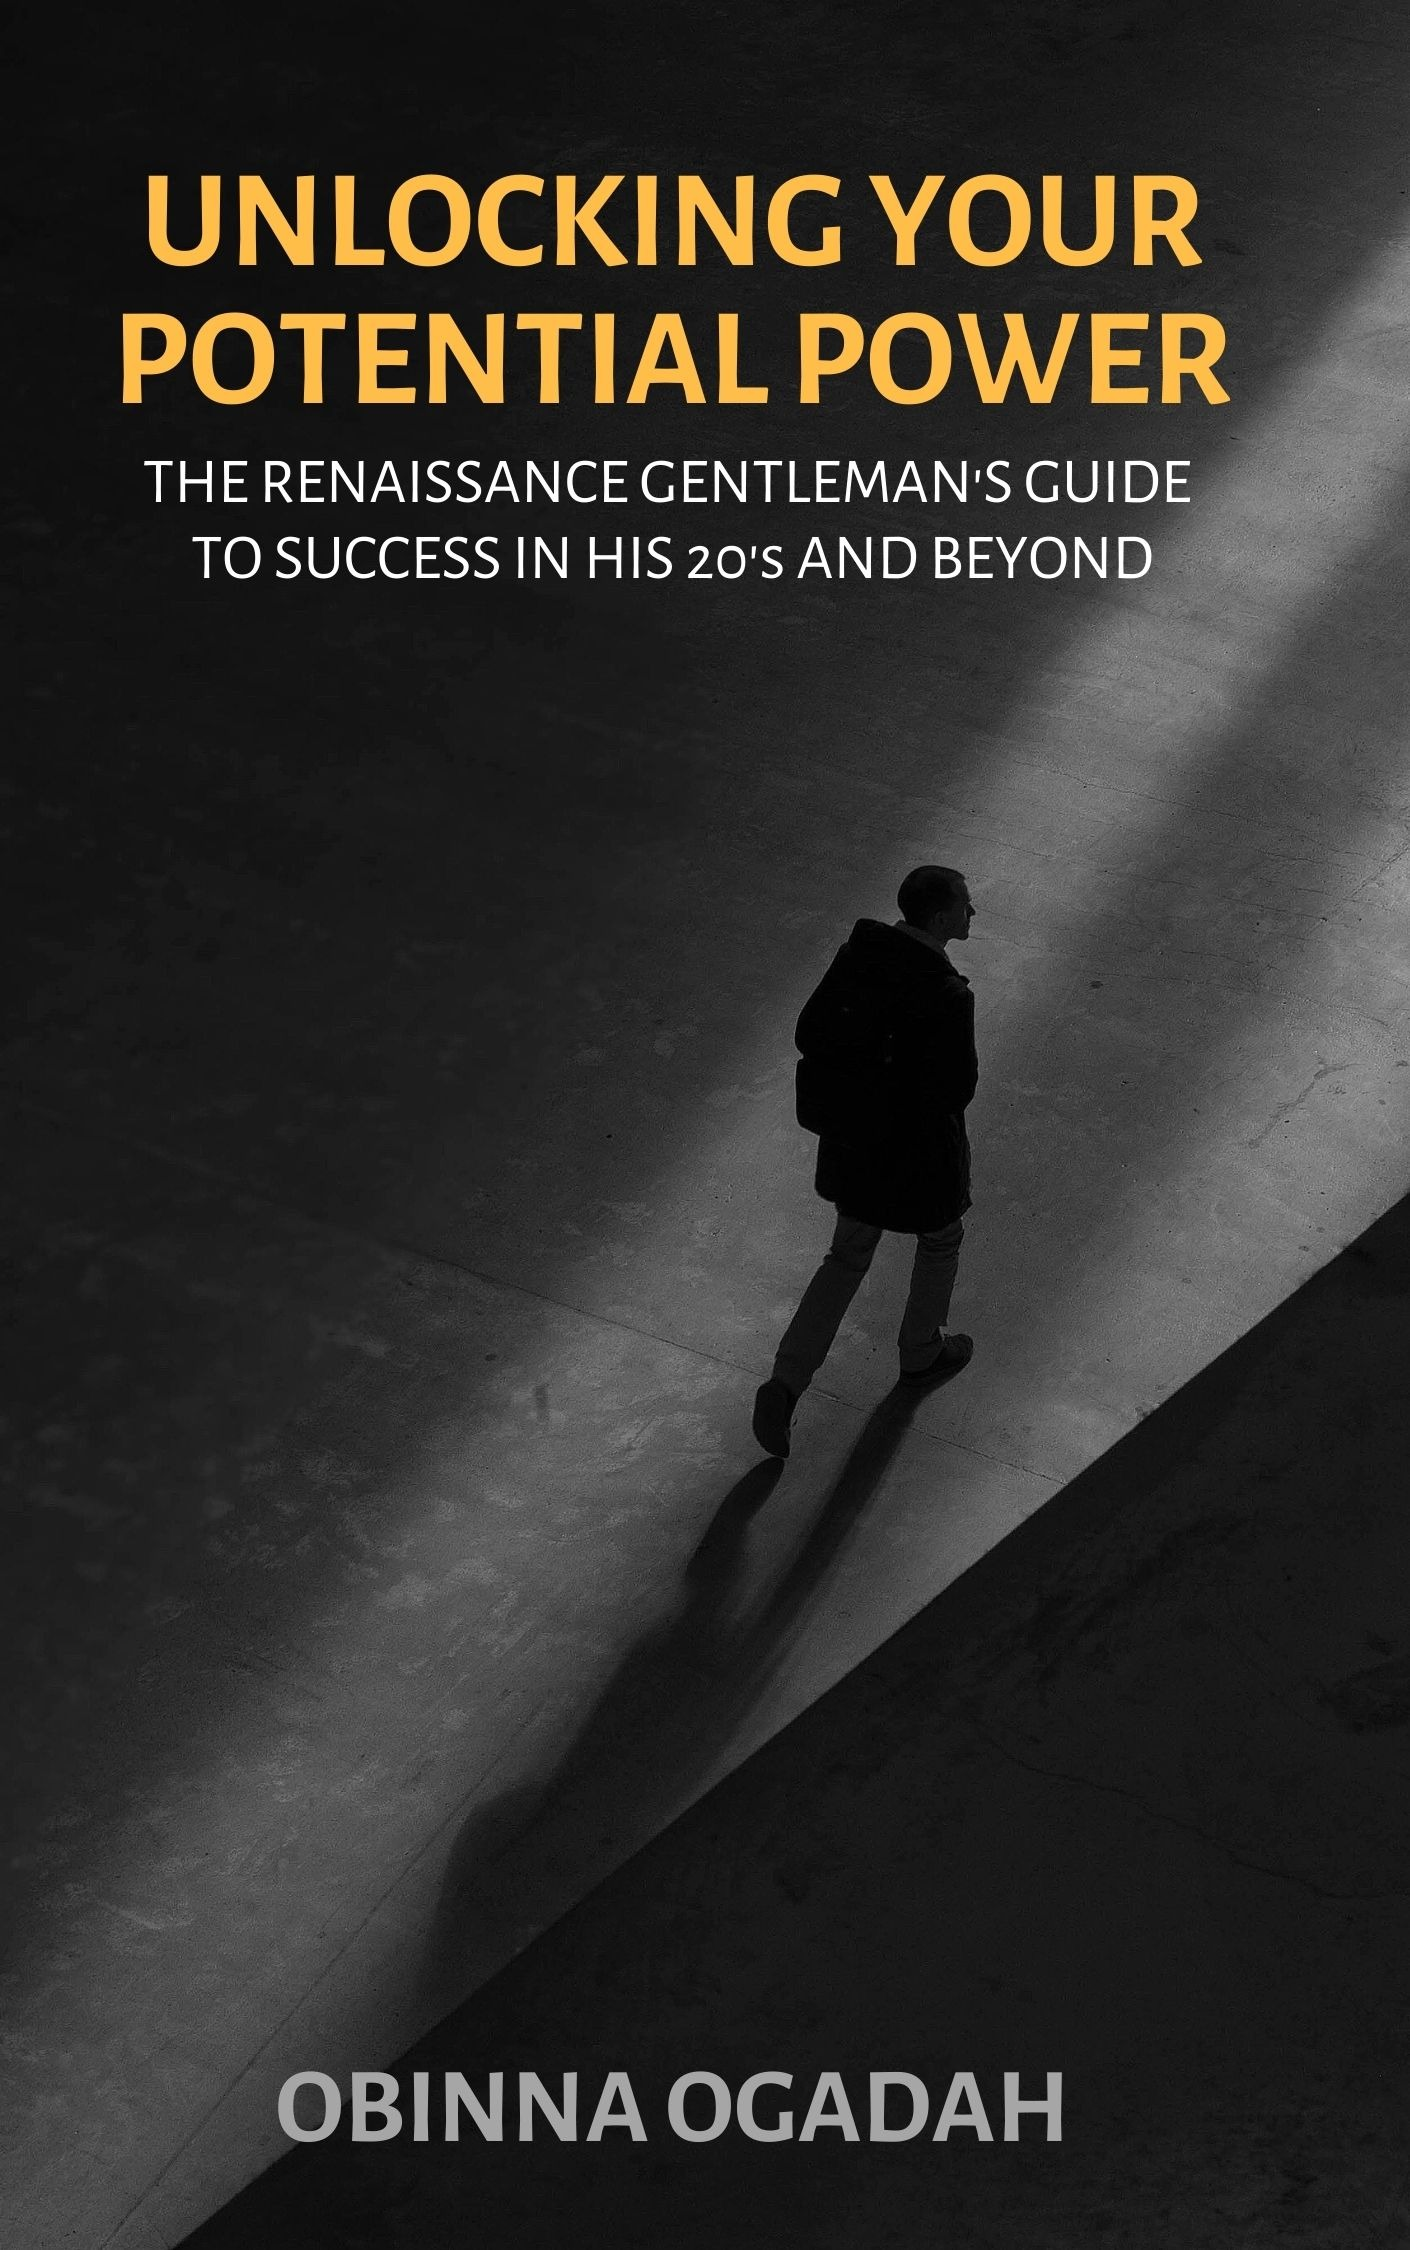 Unlocking Your Potential Power: The Renaissance Gentleman's Guide